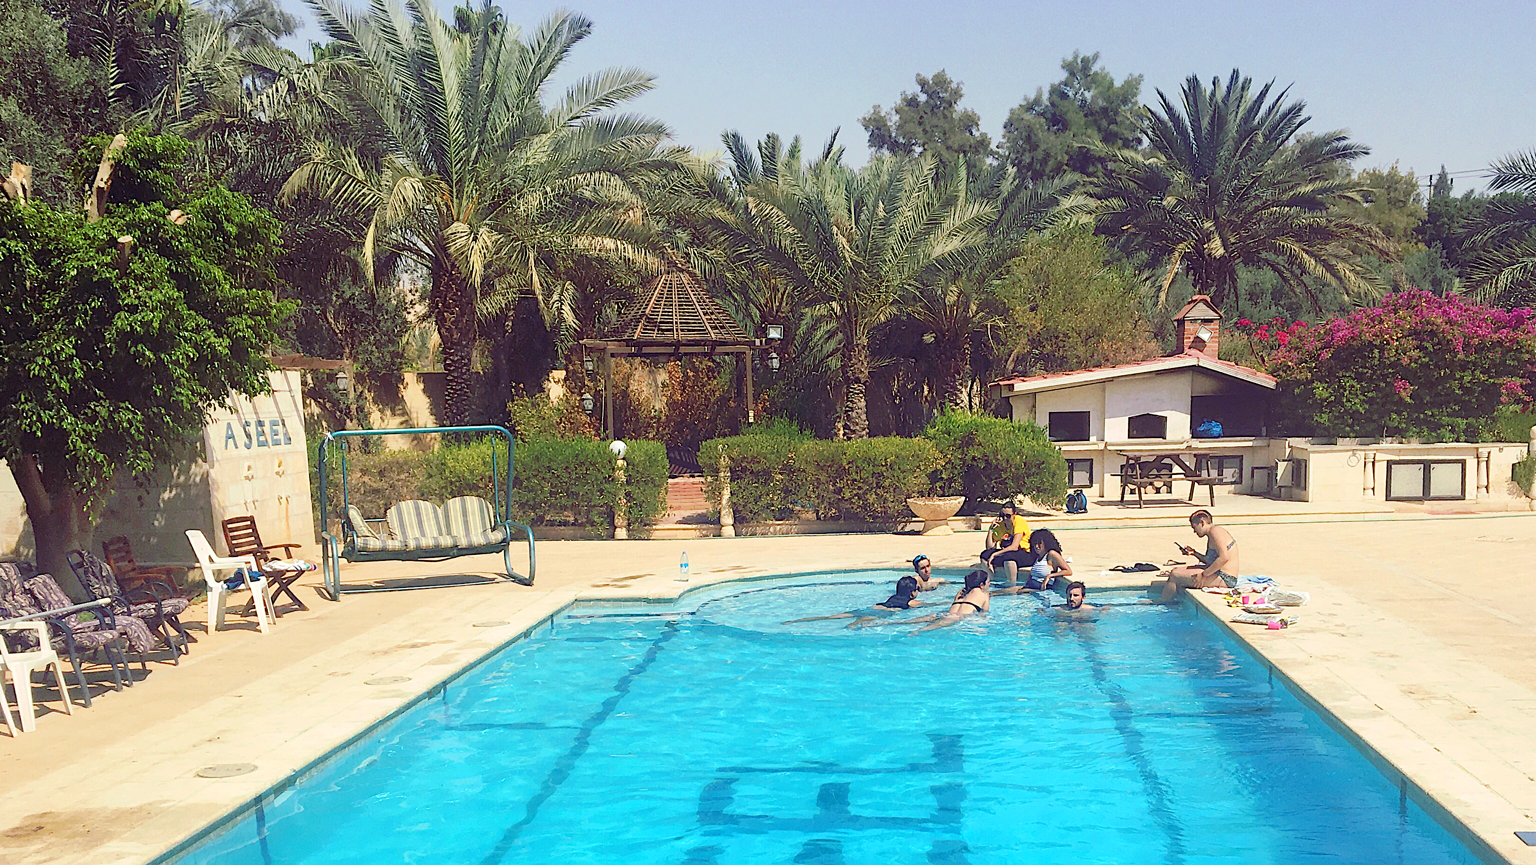 Throwback zur Pooltime im 40° heißen Jordanien